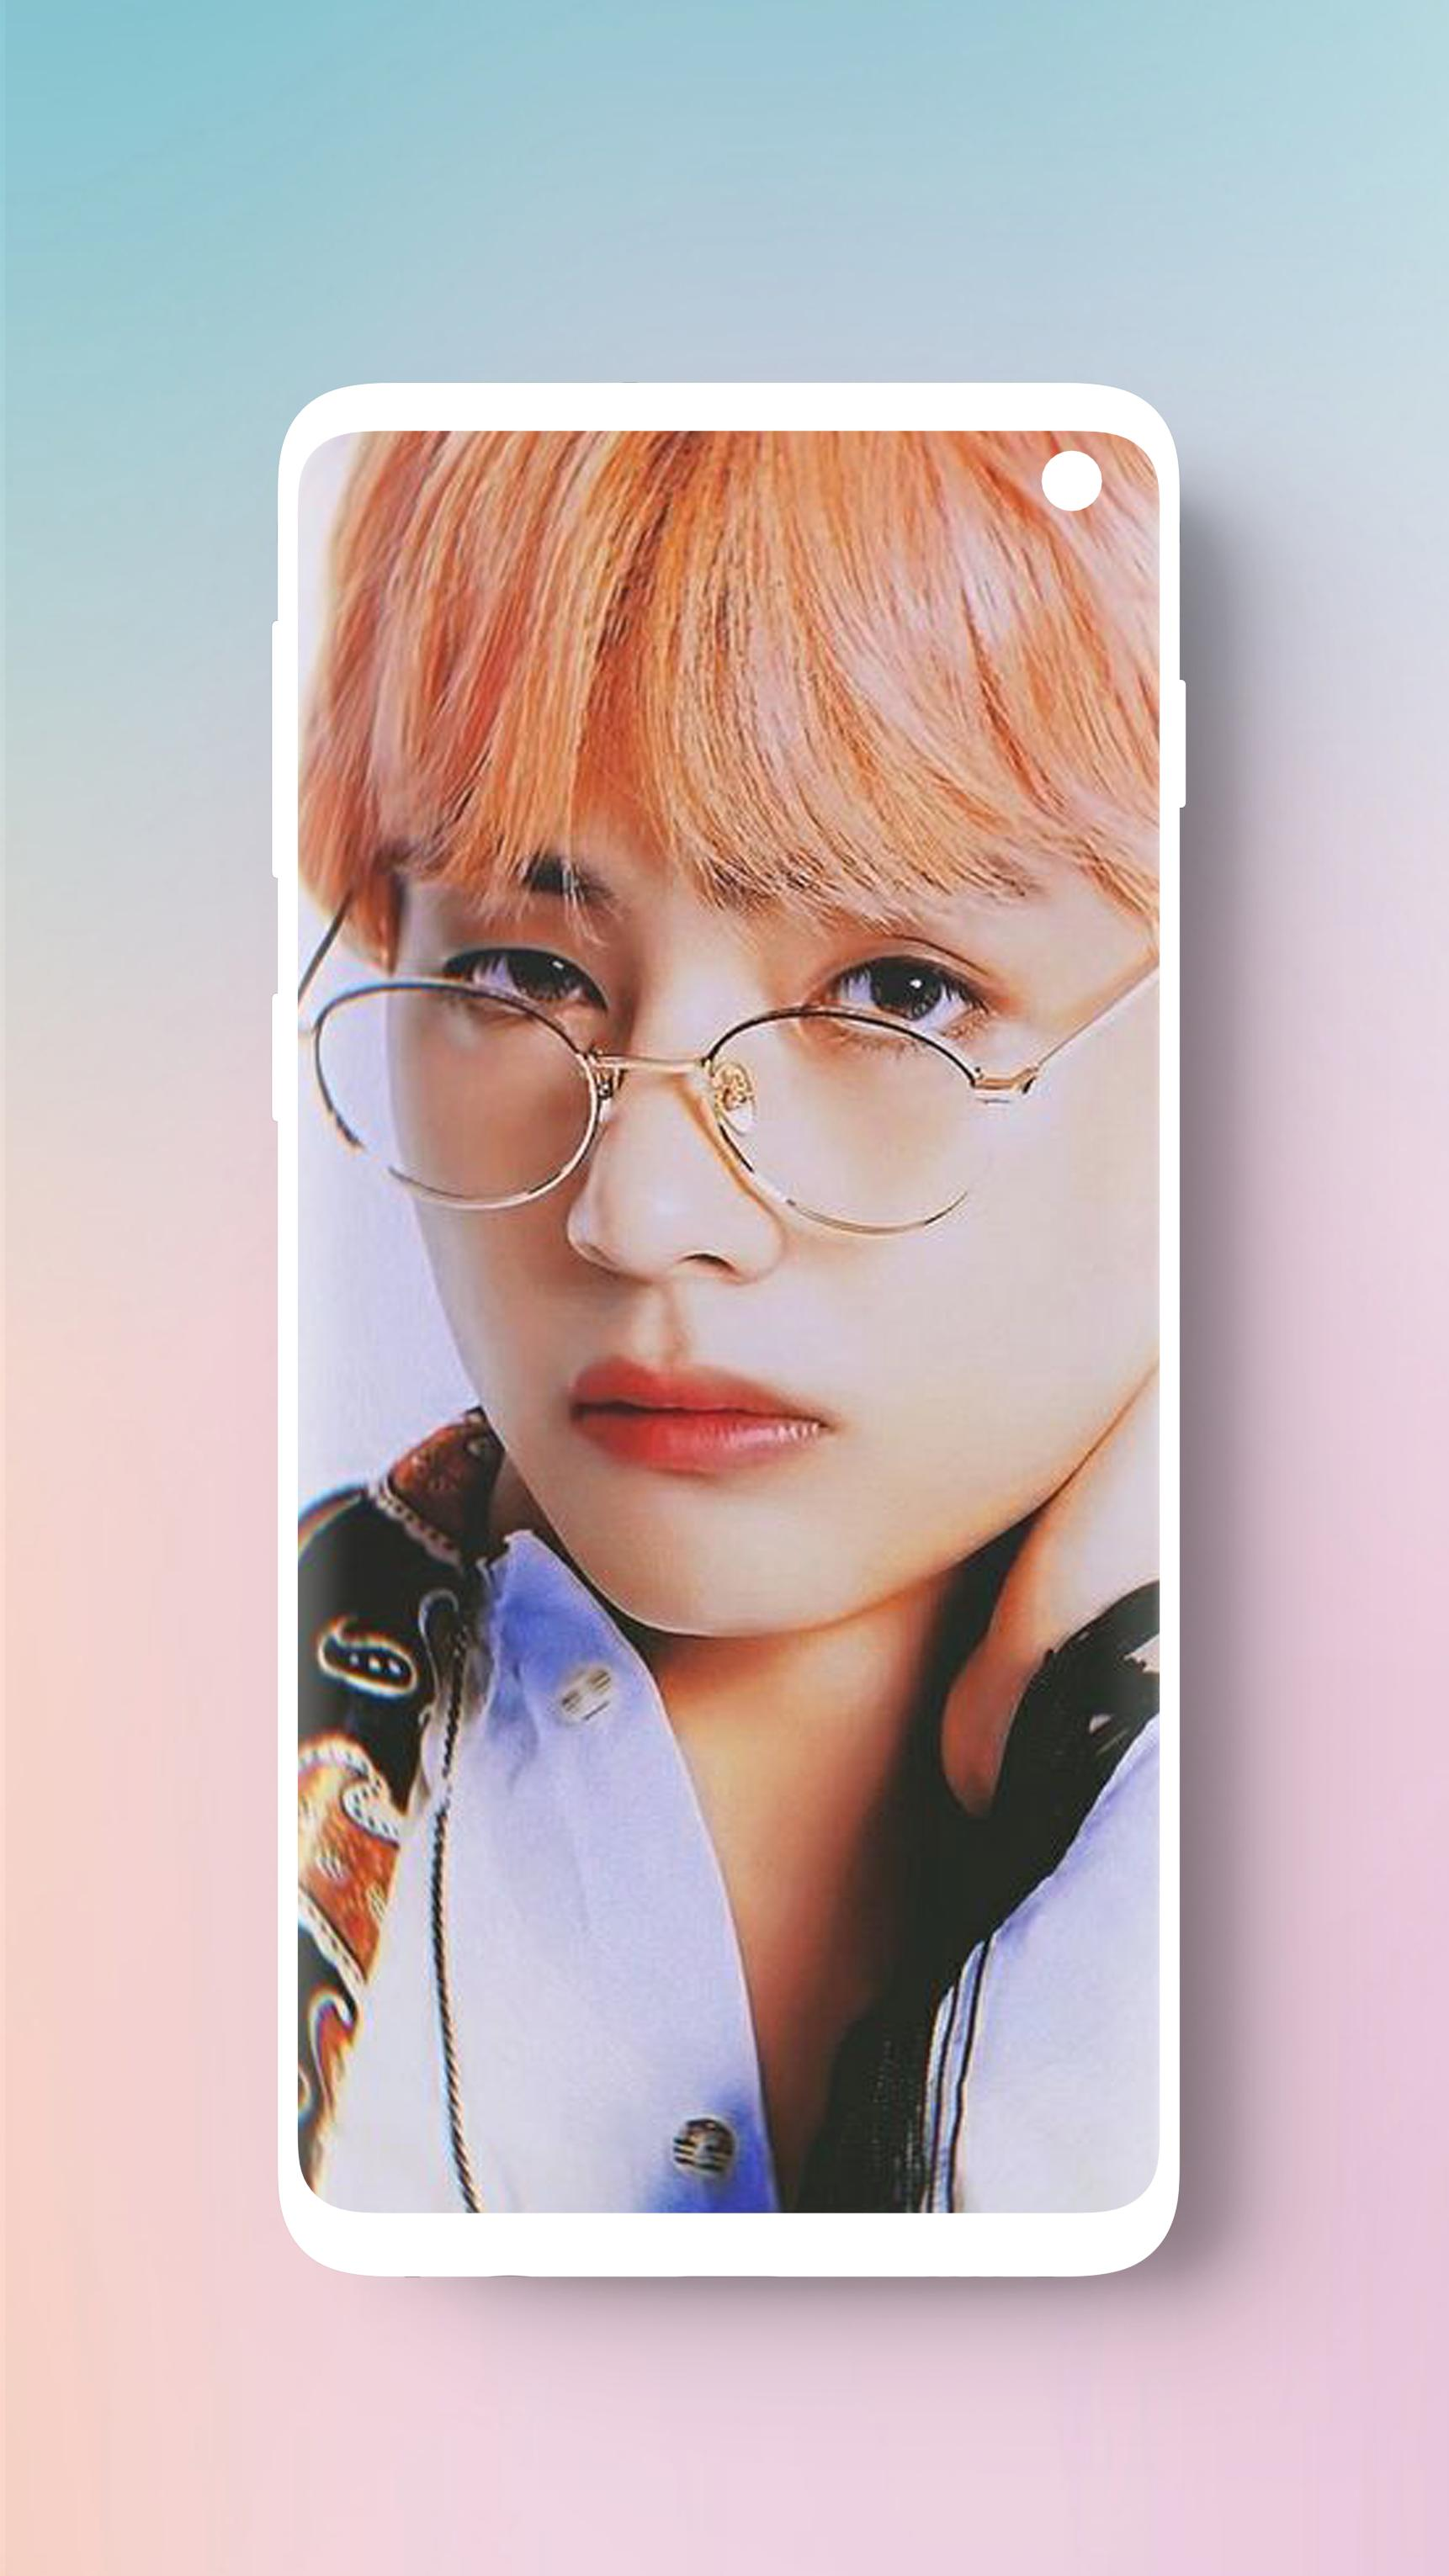 a BTS V Kim Taehyung Wallpaper HD Photos 2019 for Android